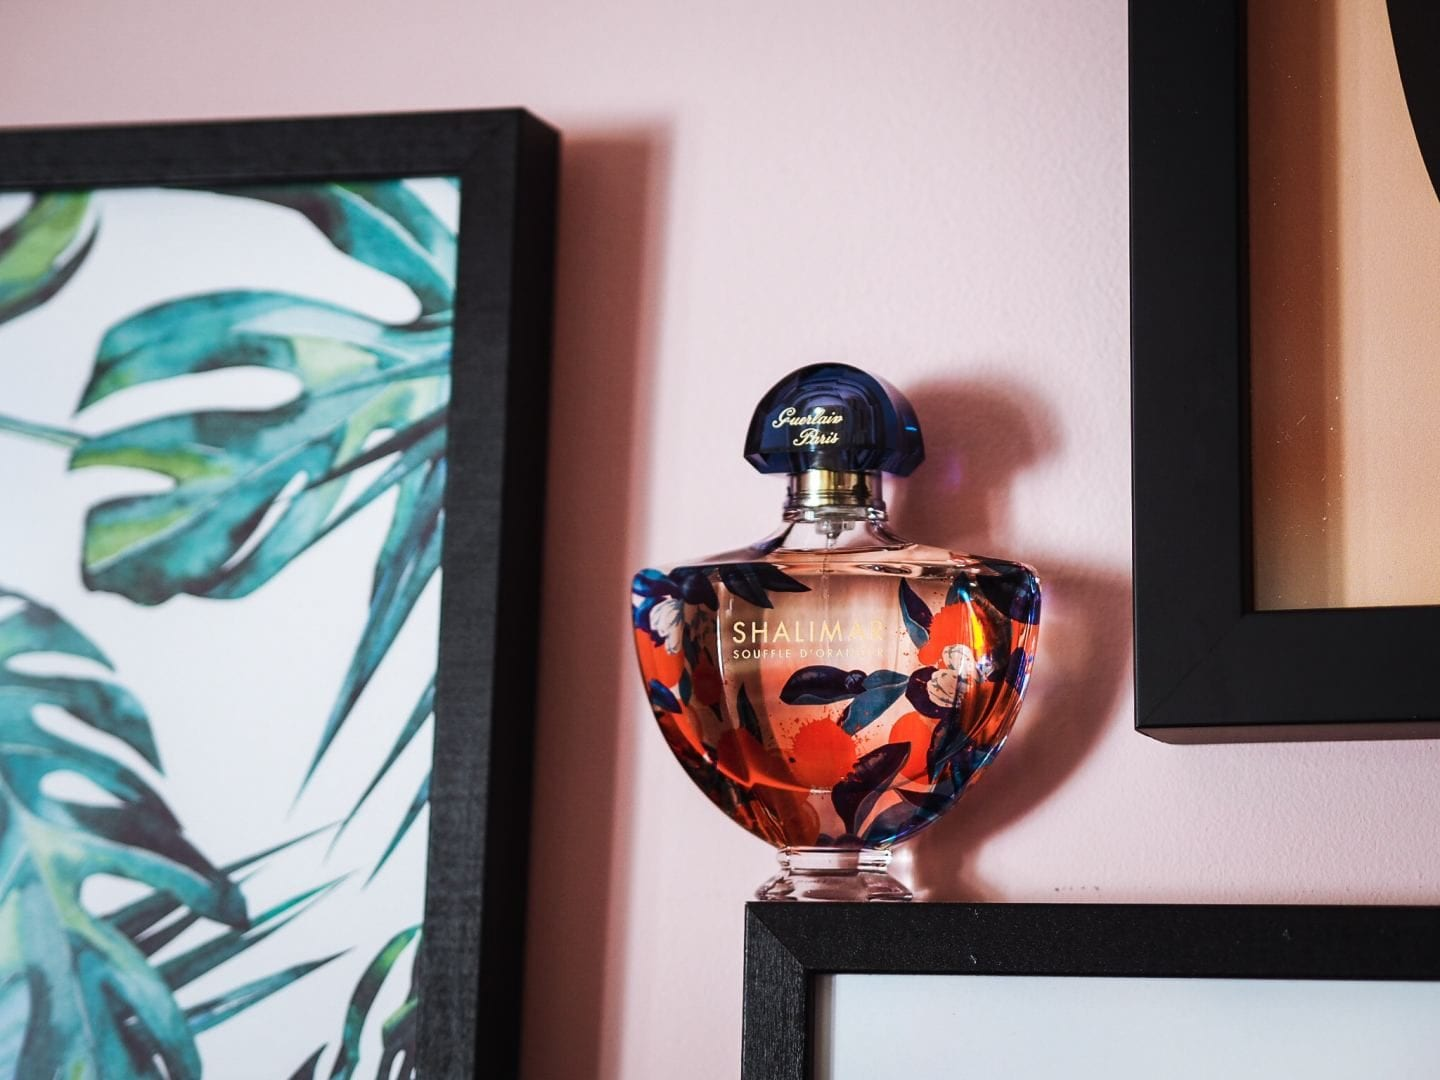 guerlain SHALIMAR SOUFFLE D'ORANGER perfume fragrance summer 2019. limited edition review fragrance perfume rare collectors edition summer 2019